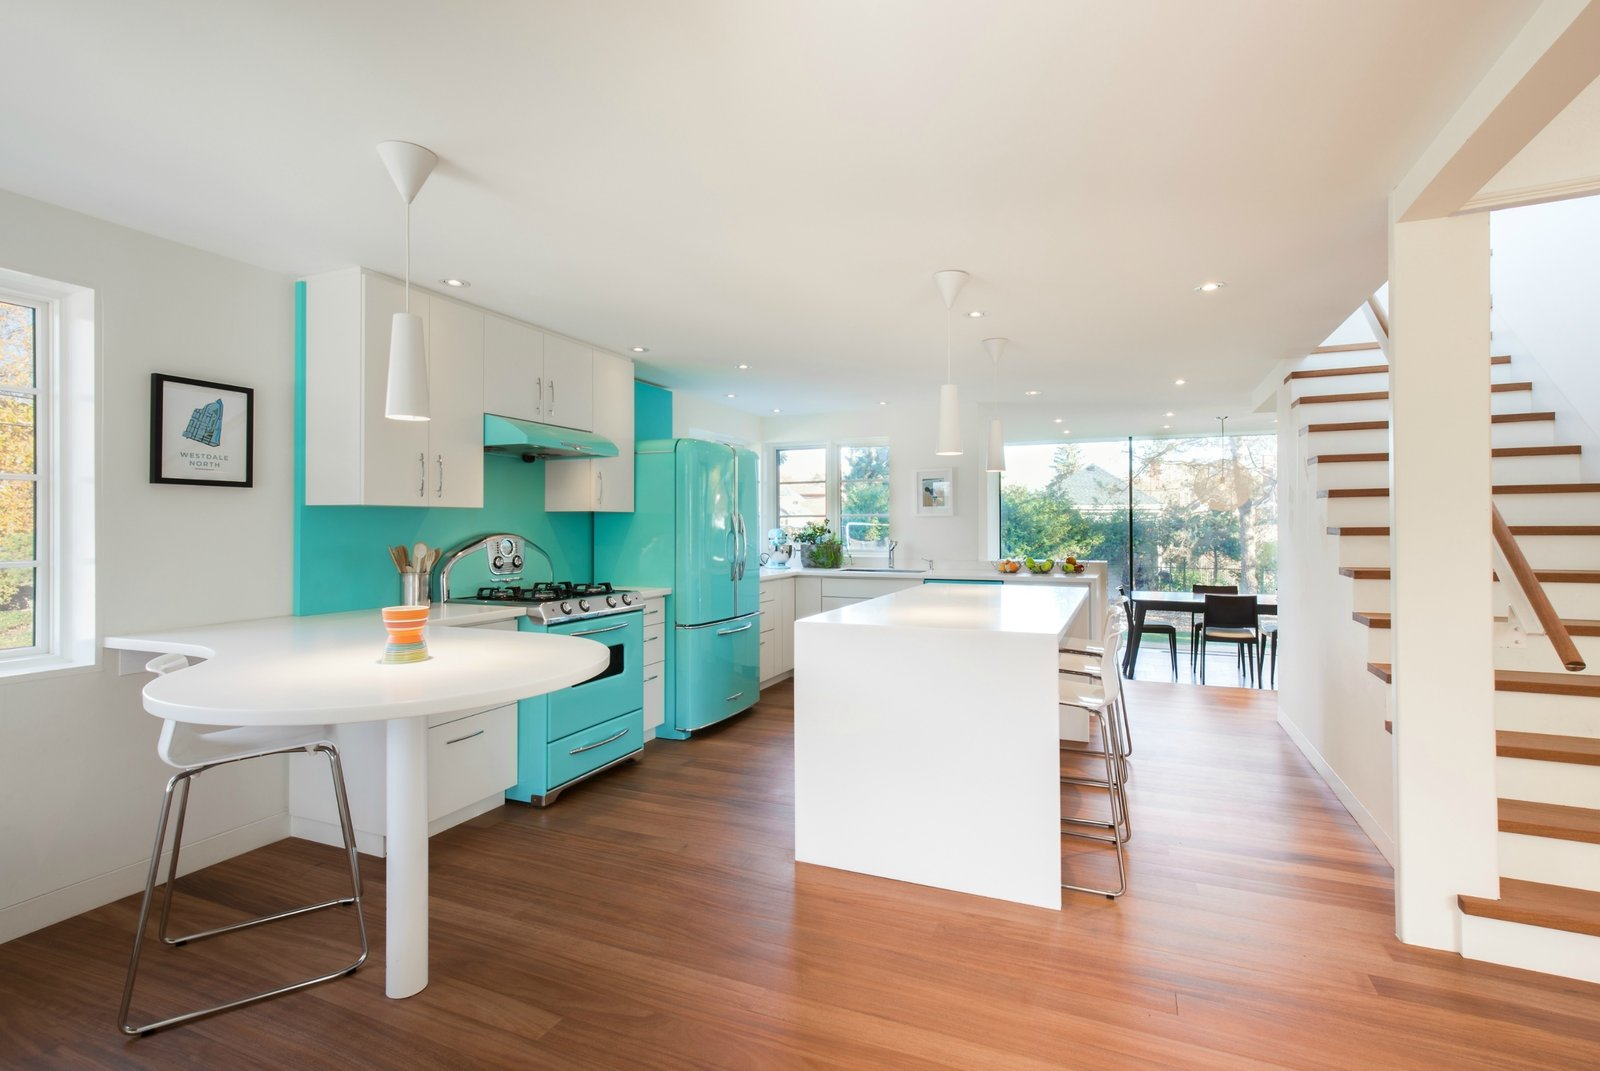 The owners brought their Elmira Stove Works appliances, including the Model 1958/1959 refrigerator and the matching Model 1955 stove, into their new home. Custom cabinets and IKEA chairs provide an equally bright finish. Tagged: Kitchen and White Cabinet.  Art Moderne by Kelly Dawson